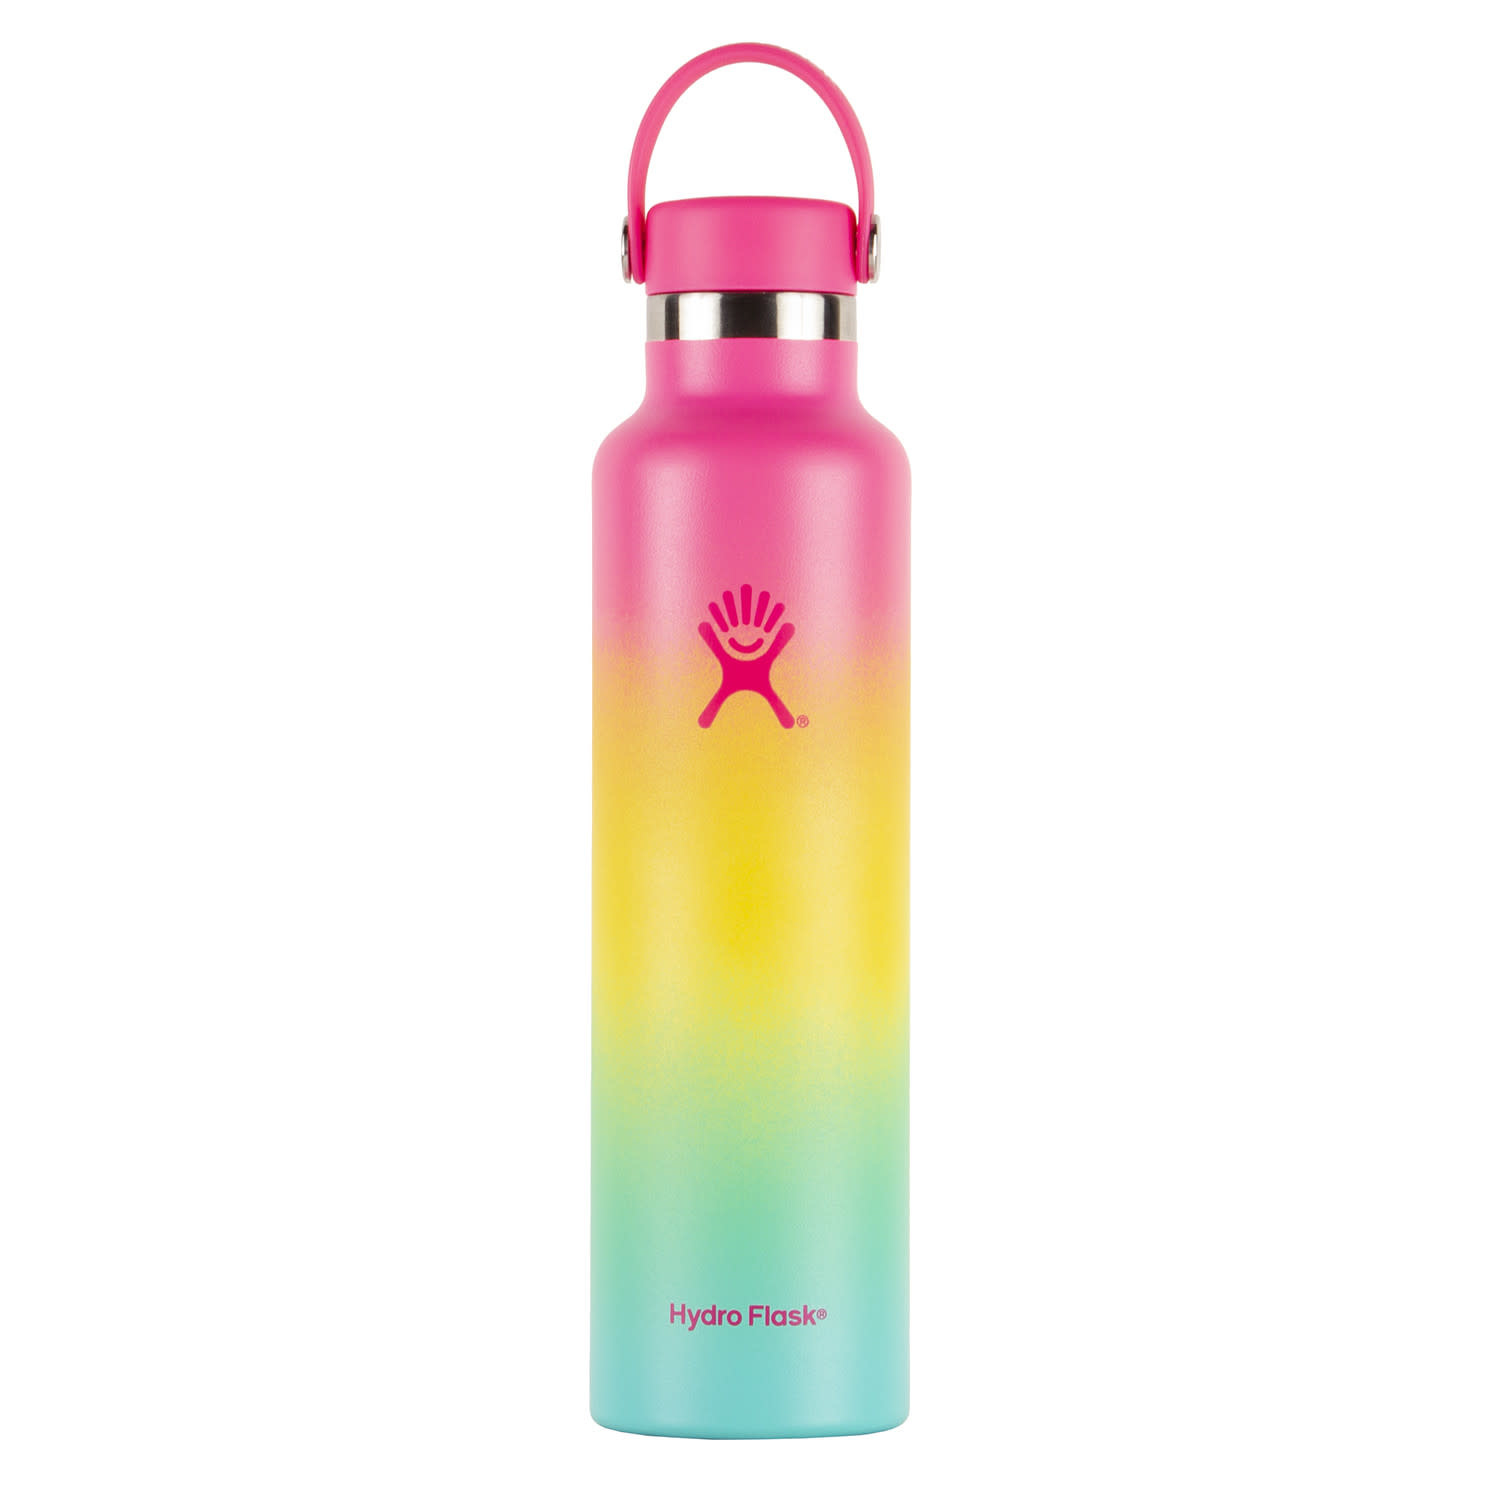 Hydro Flask Alpenglow Pink Lid 24 OZ